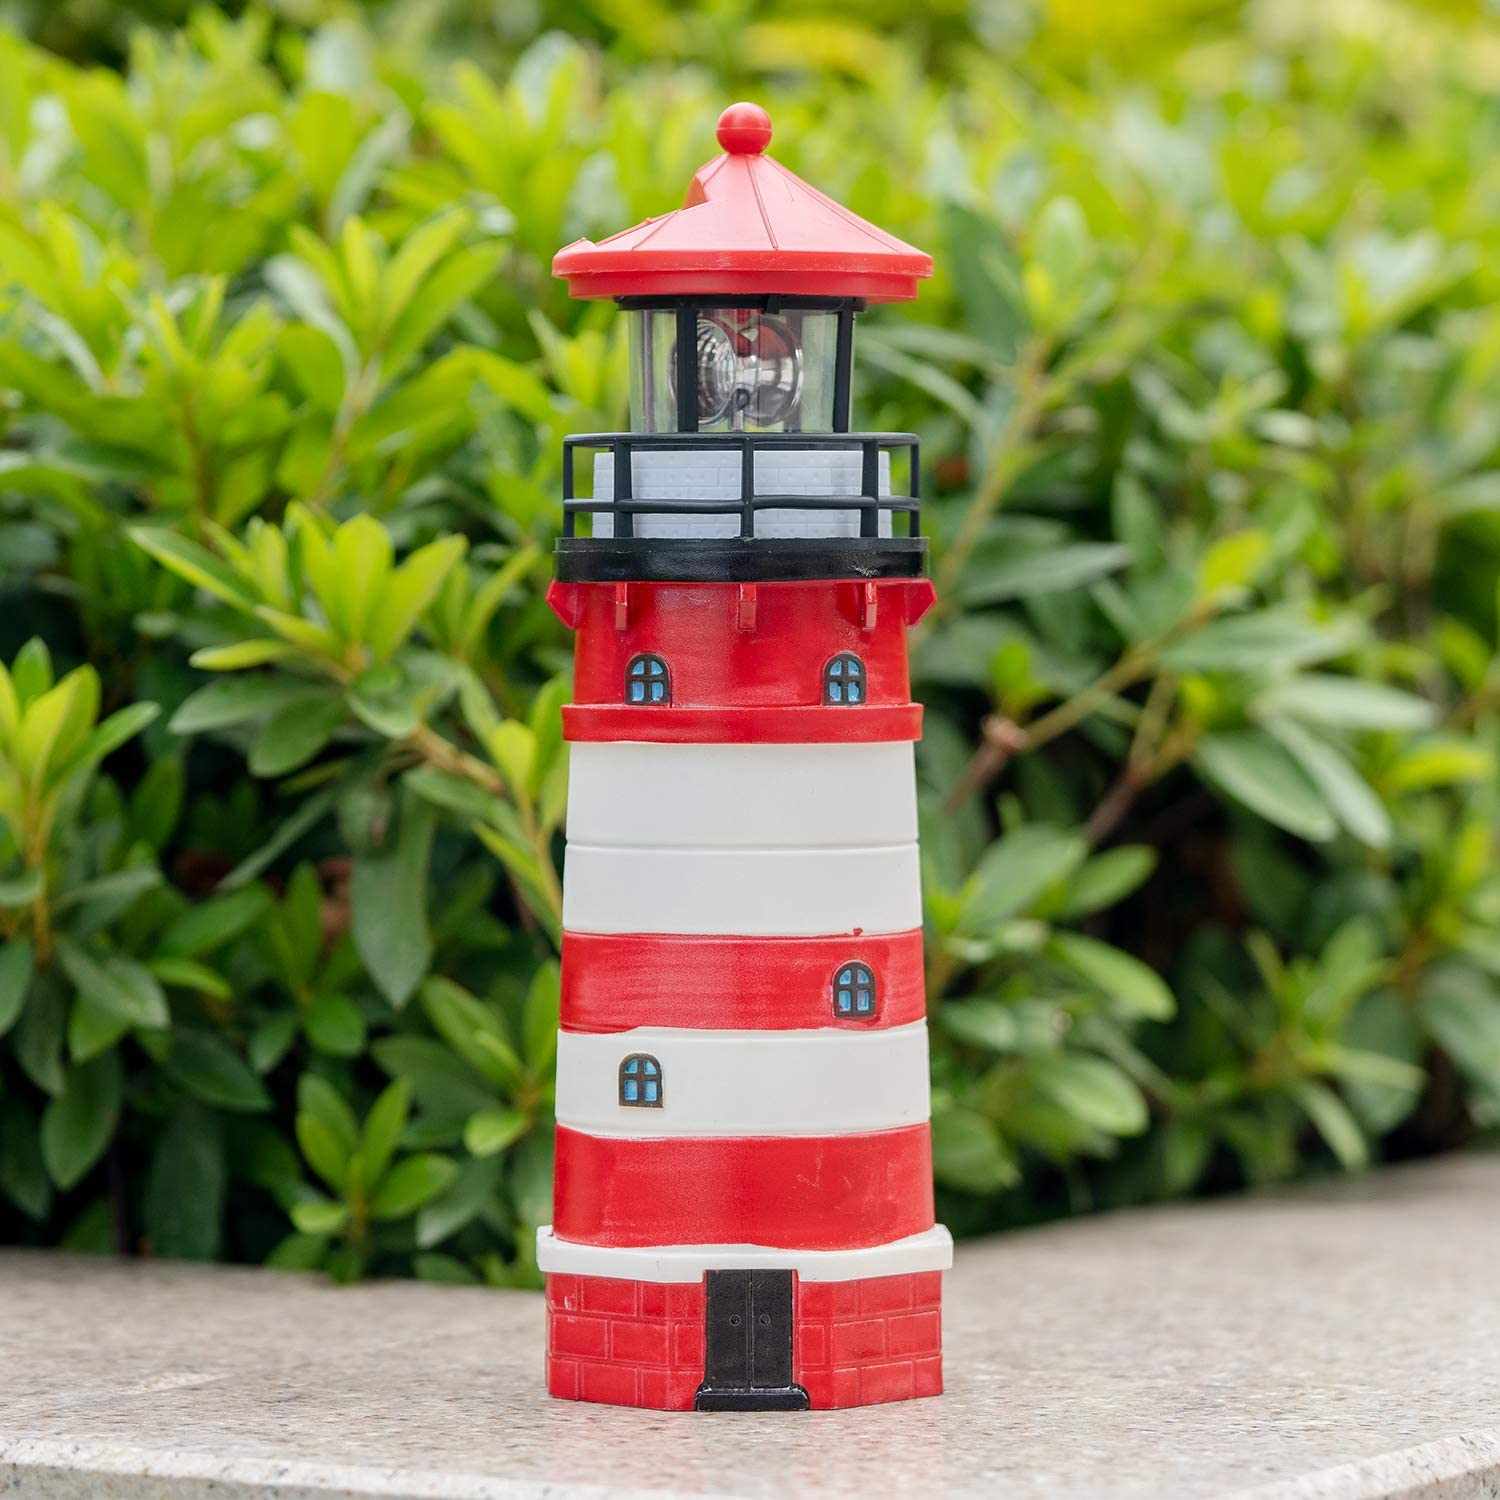 Garden Solar Lights Outdoor Decorative - Lighthouse with Rotating Beacon LED Lights for Garden Patio Lawn (Red)